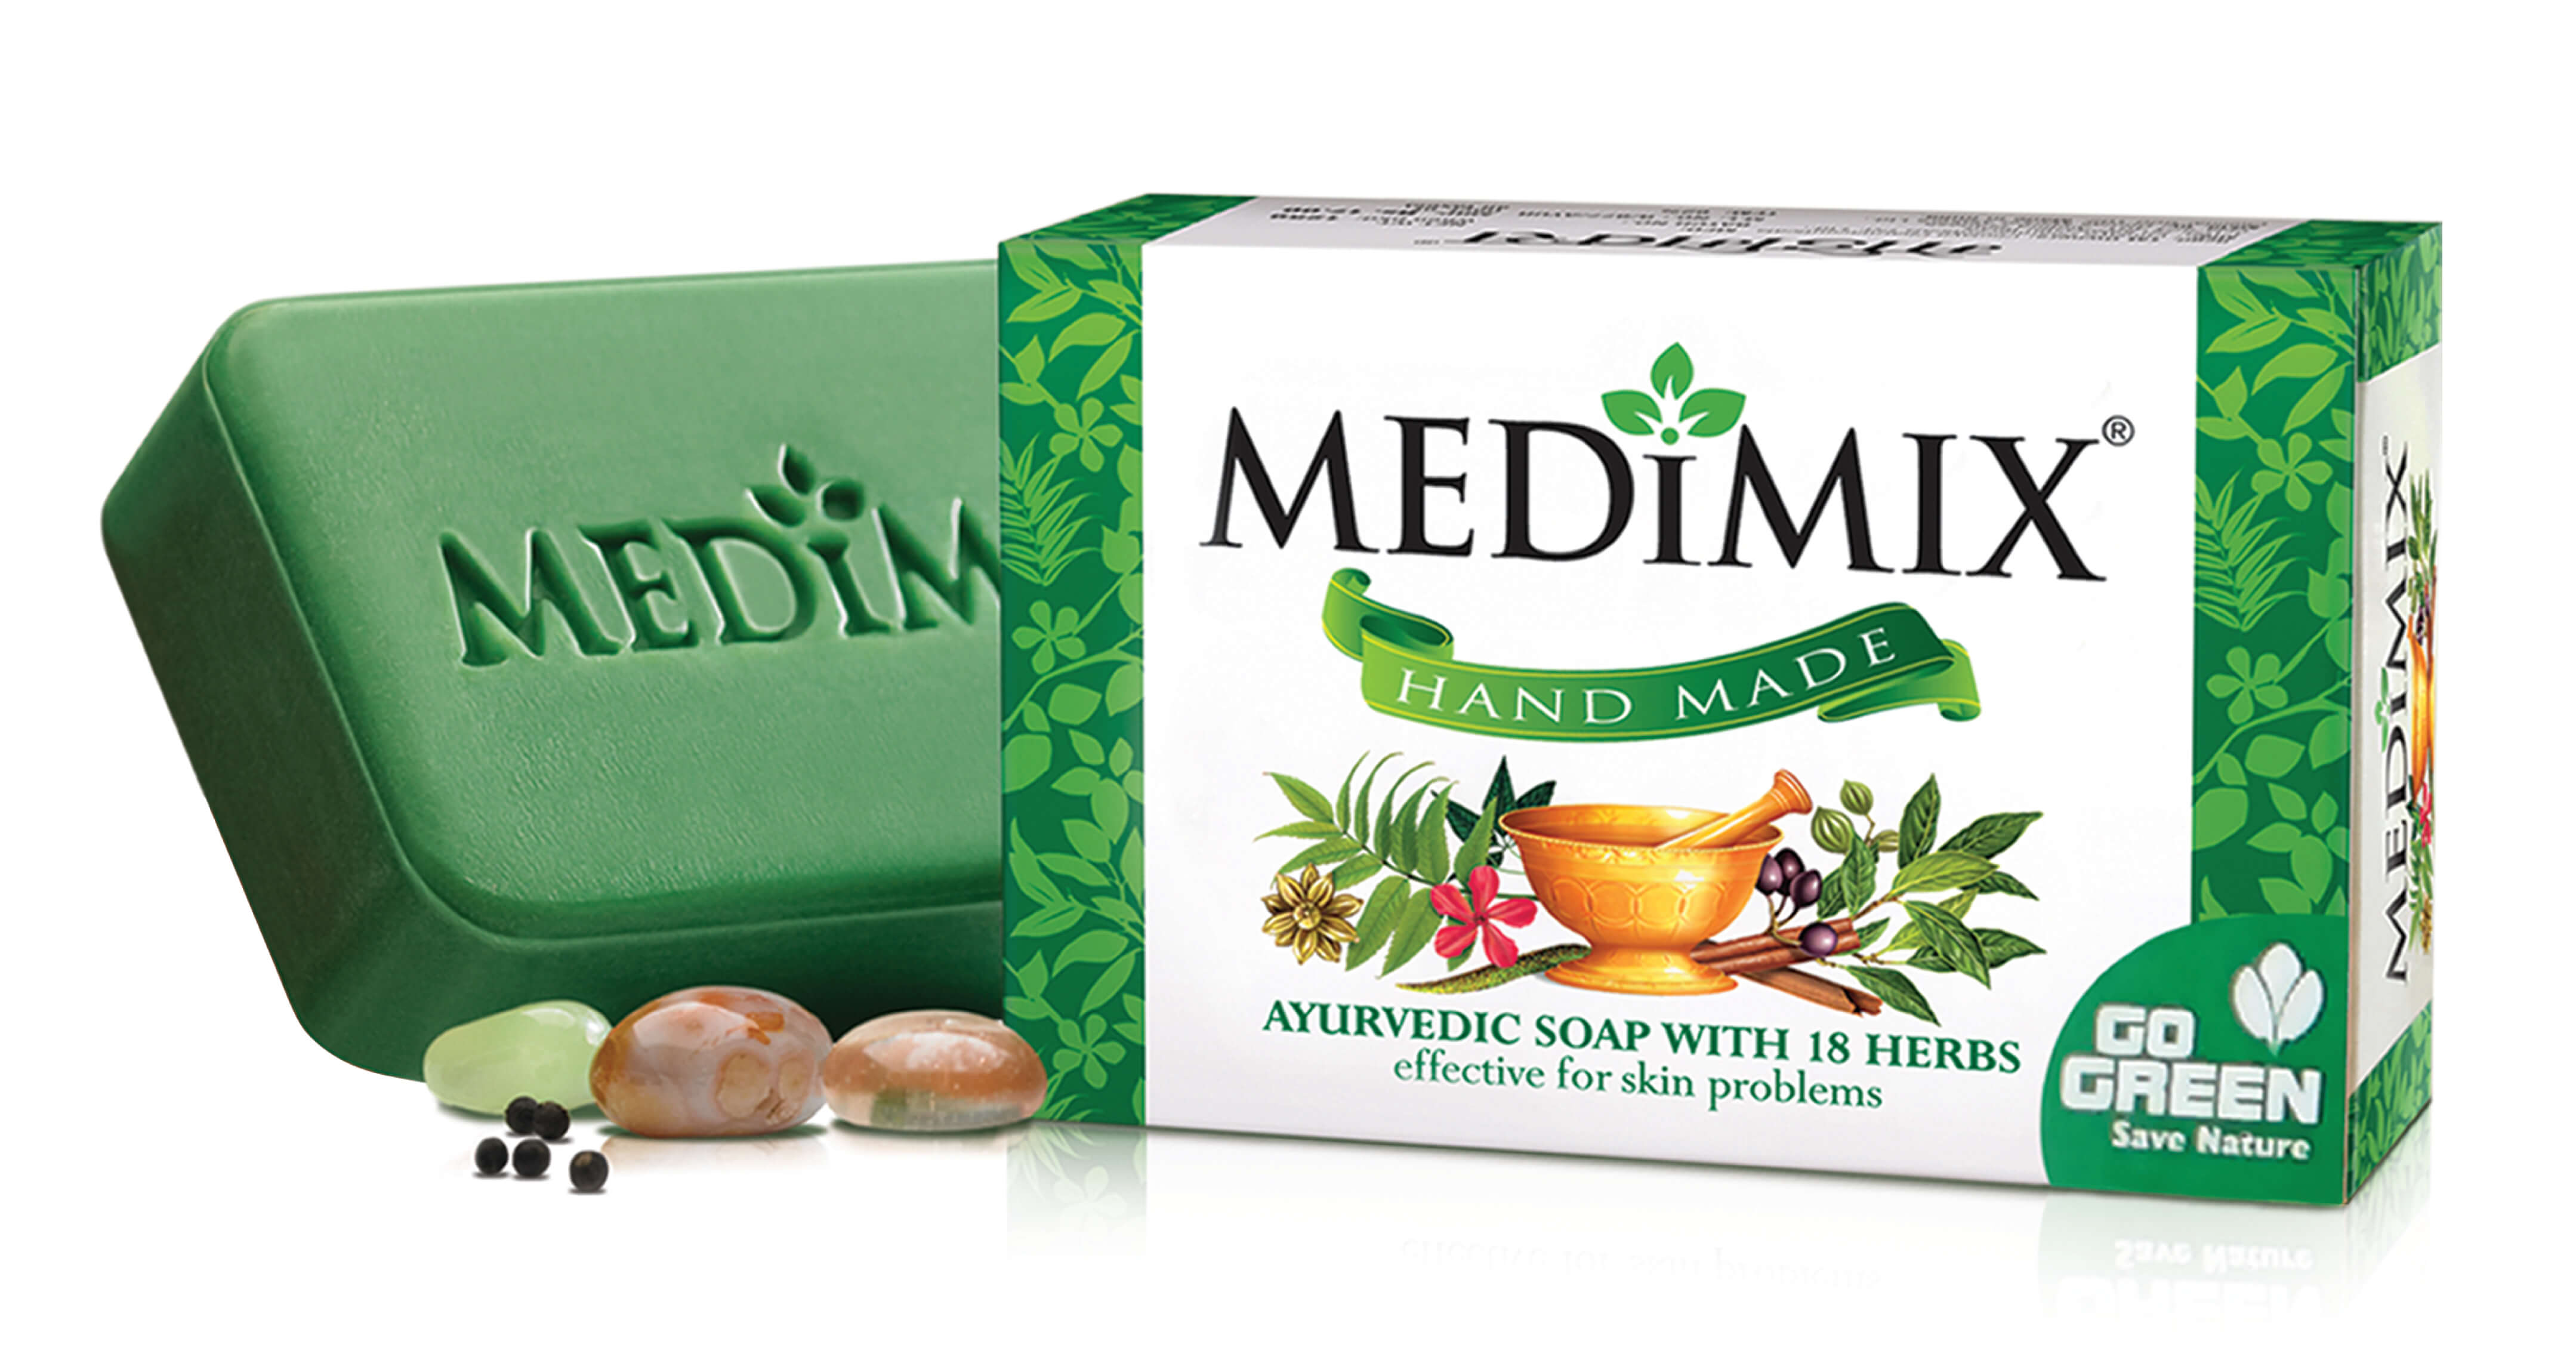 MEDIMIX SOAP Reviews, MEDIMIX SOAP Prices, MEDIMIX SOAP India, Women